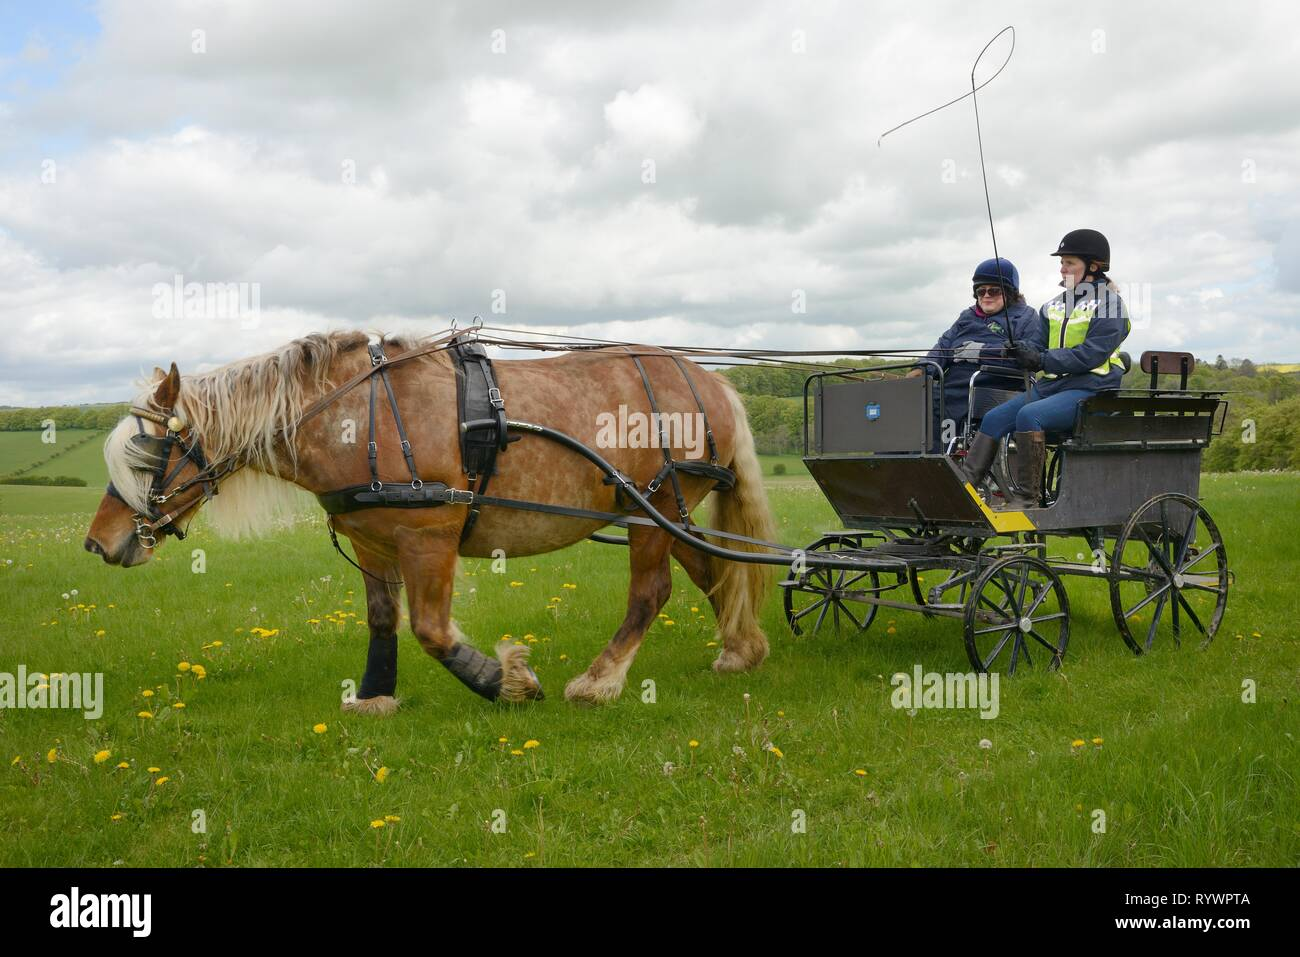 Carriage Driving run by the Riding for the Disabled Association, Marlborough Downs, Wiltshire, UK. - Stock Image